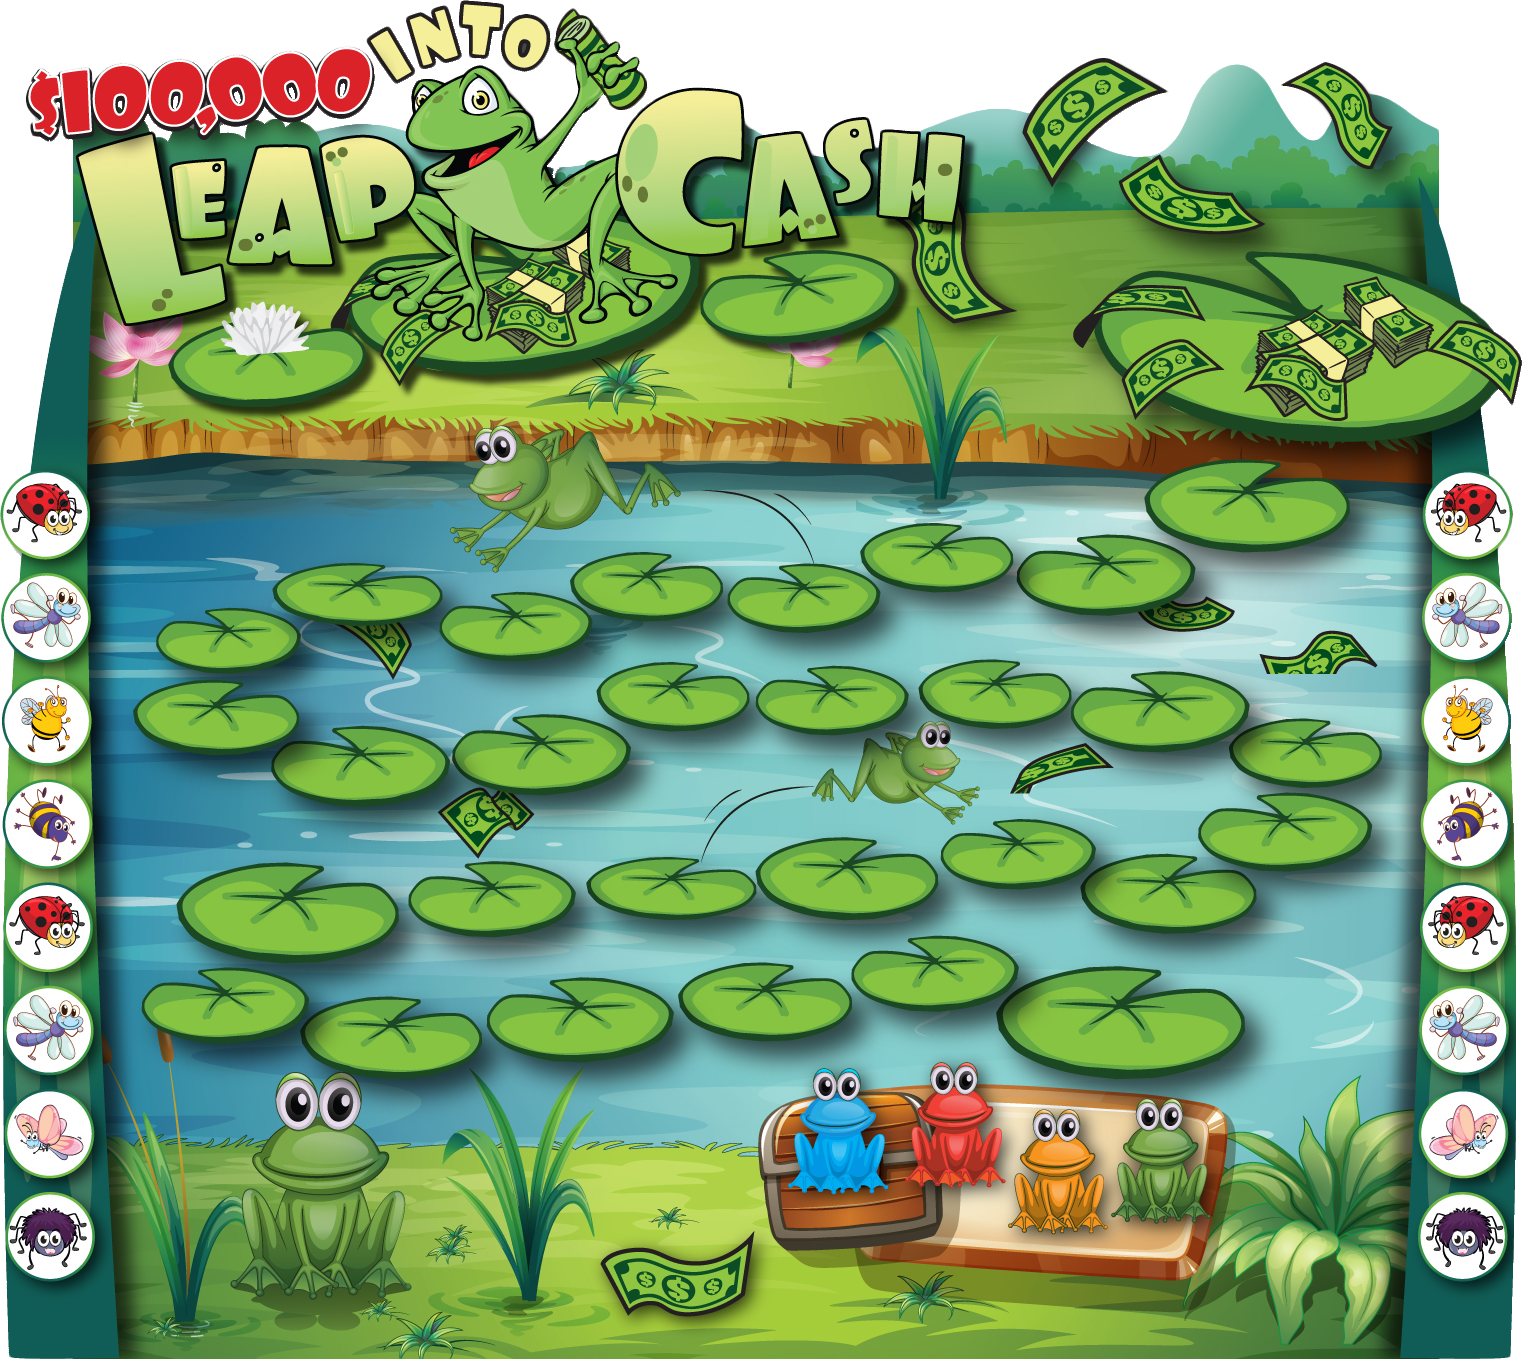 Leap_Into_Cash_game_board.png